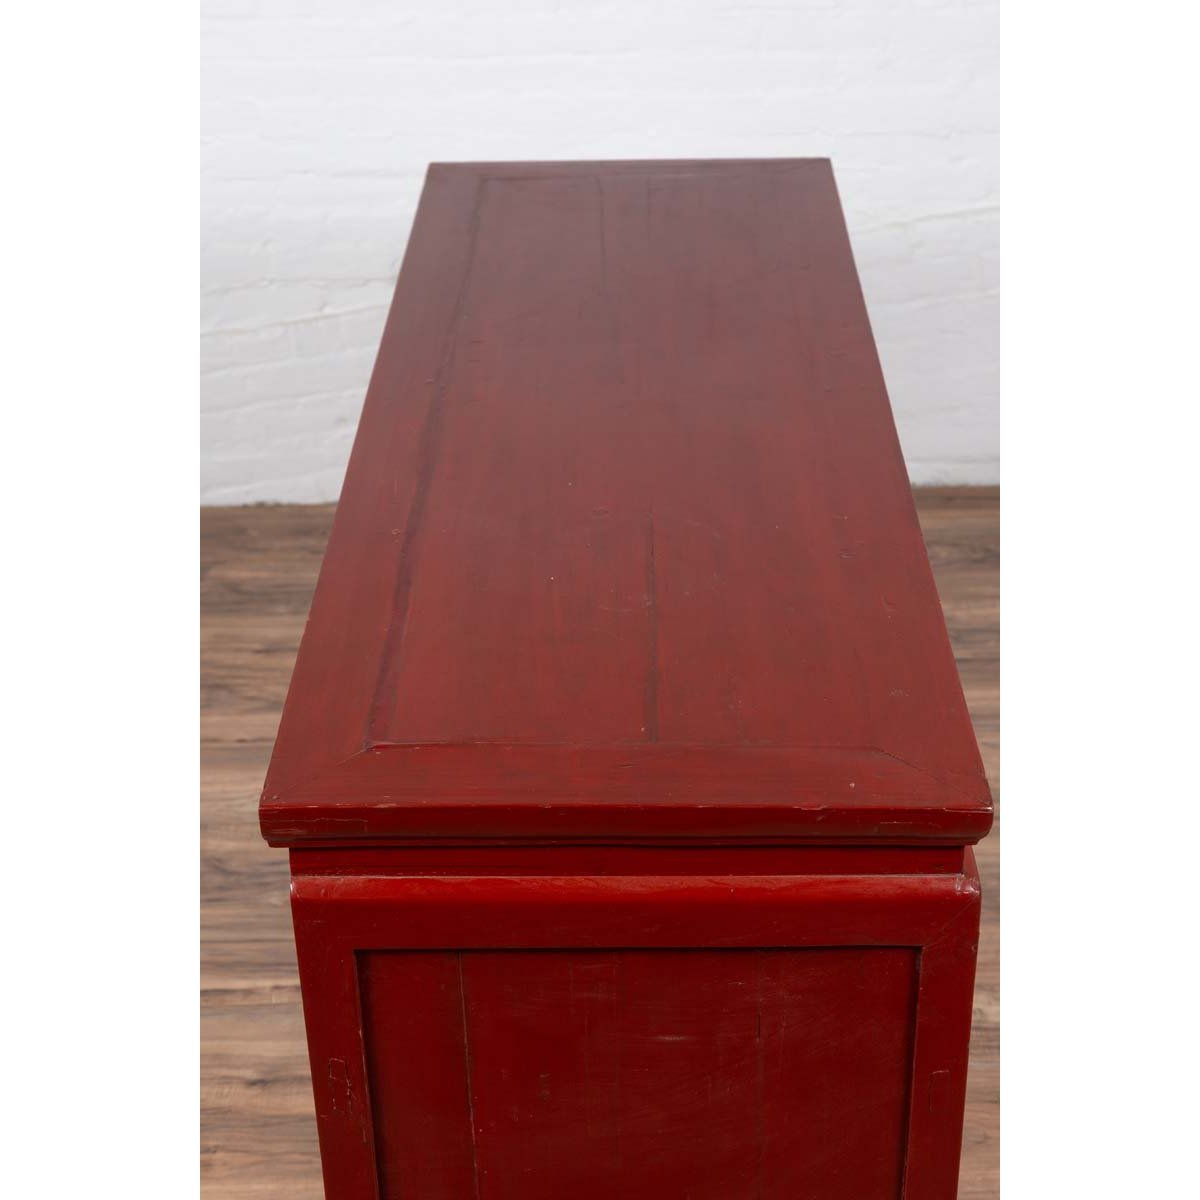 Chinese Ming Dynasty Style Red Lacquered Console Cabinet with Doors and Drawers